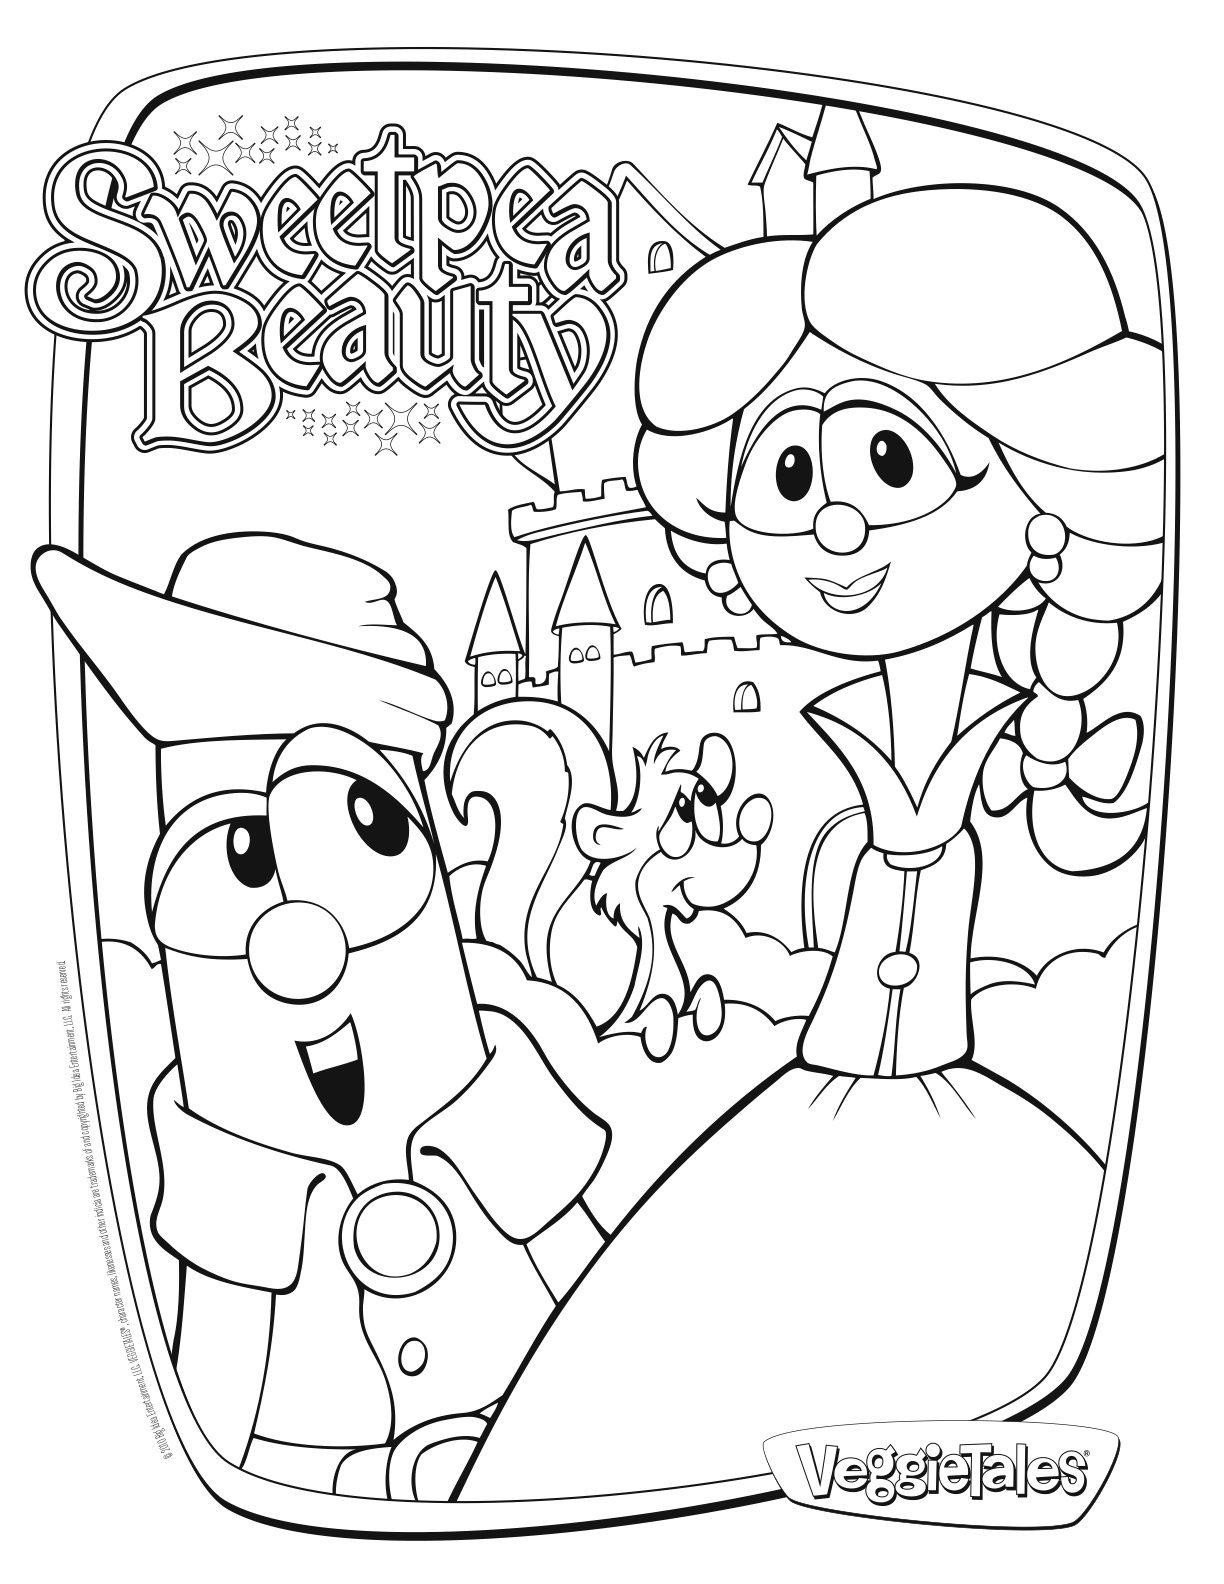 Veggie Tale color pages | Maggie's Second Birthday ...